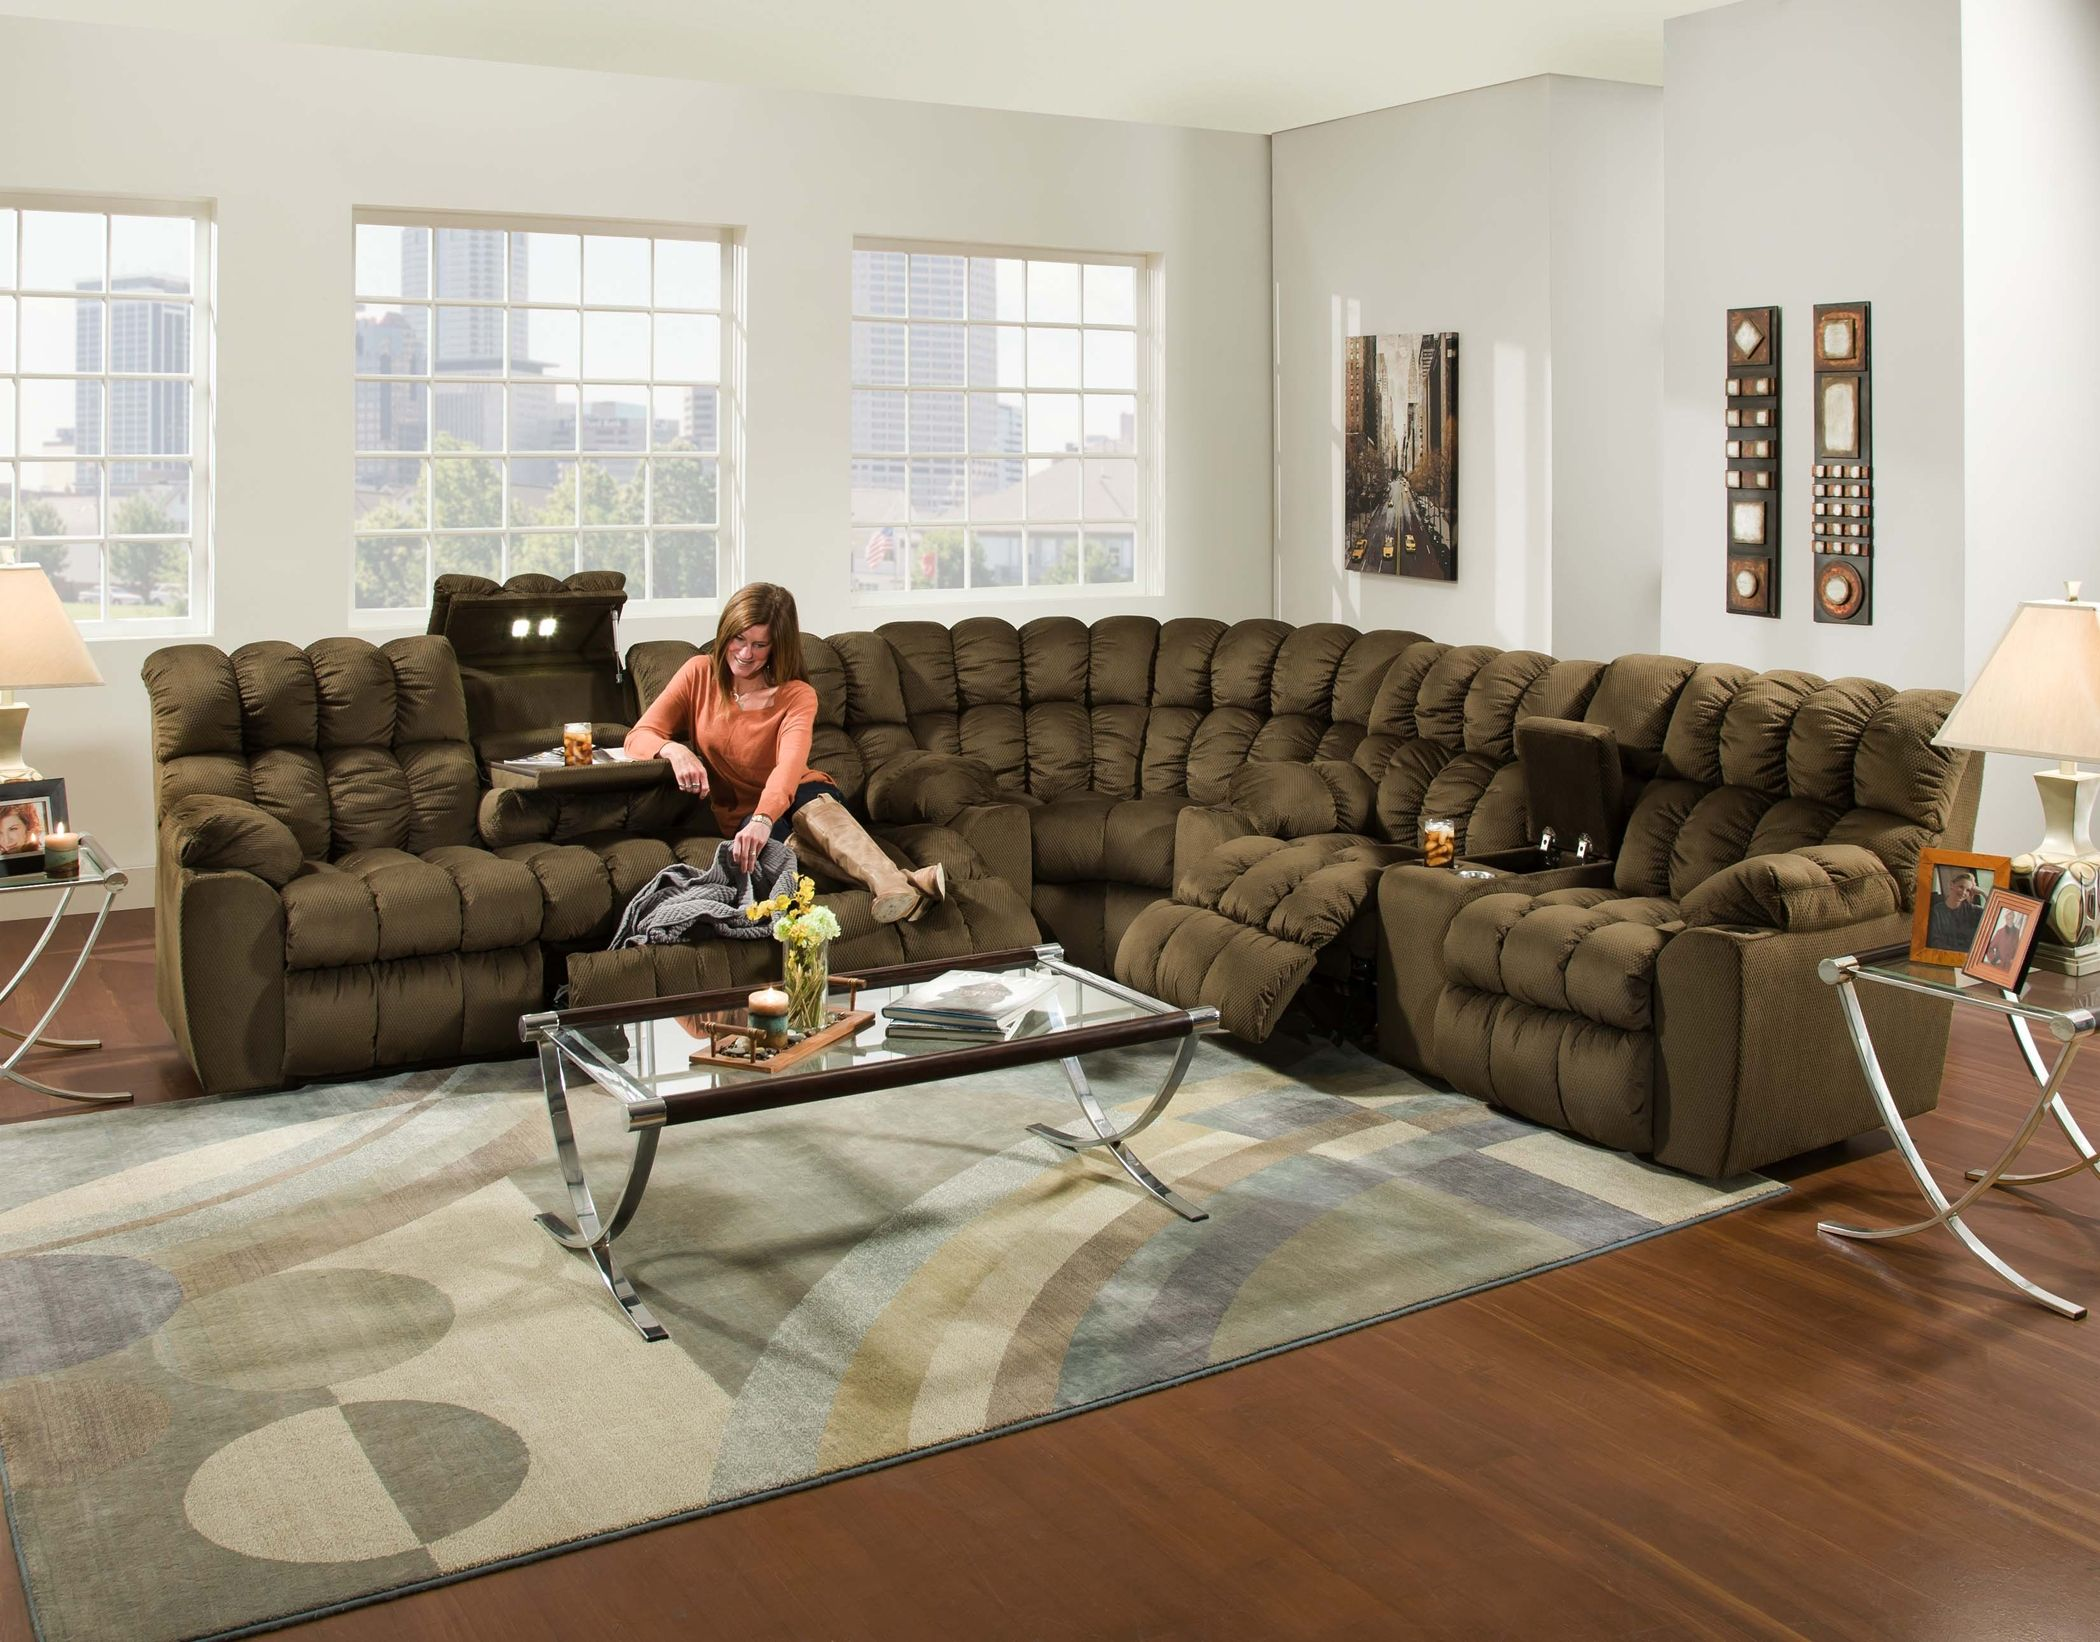 Brayden 440 Reclining Sectional With Dropdown Table Lights And More Reclining Sectional Sectional Sofa Sectional